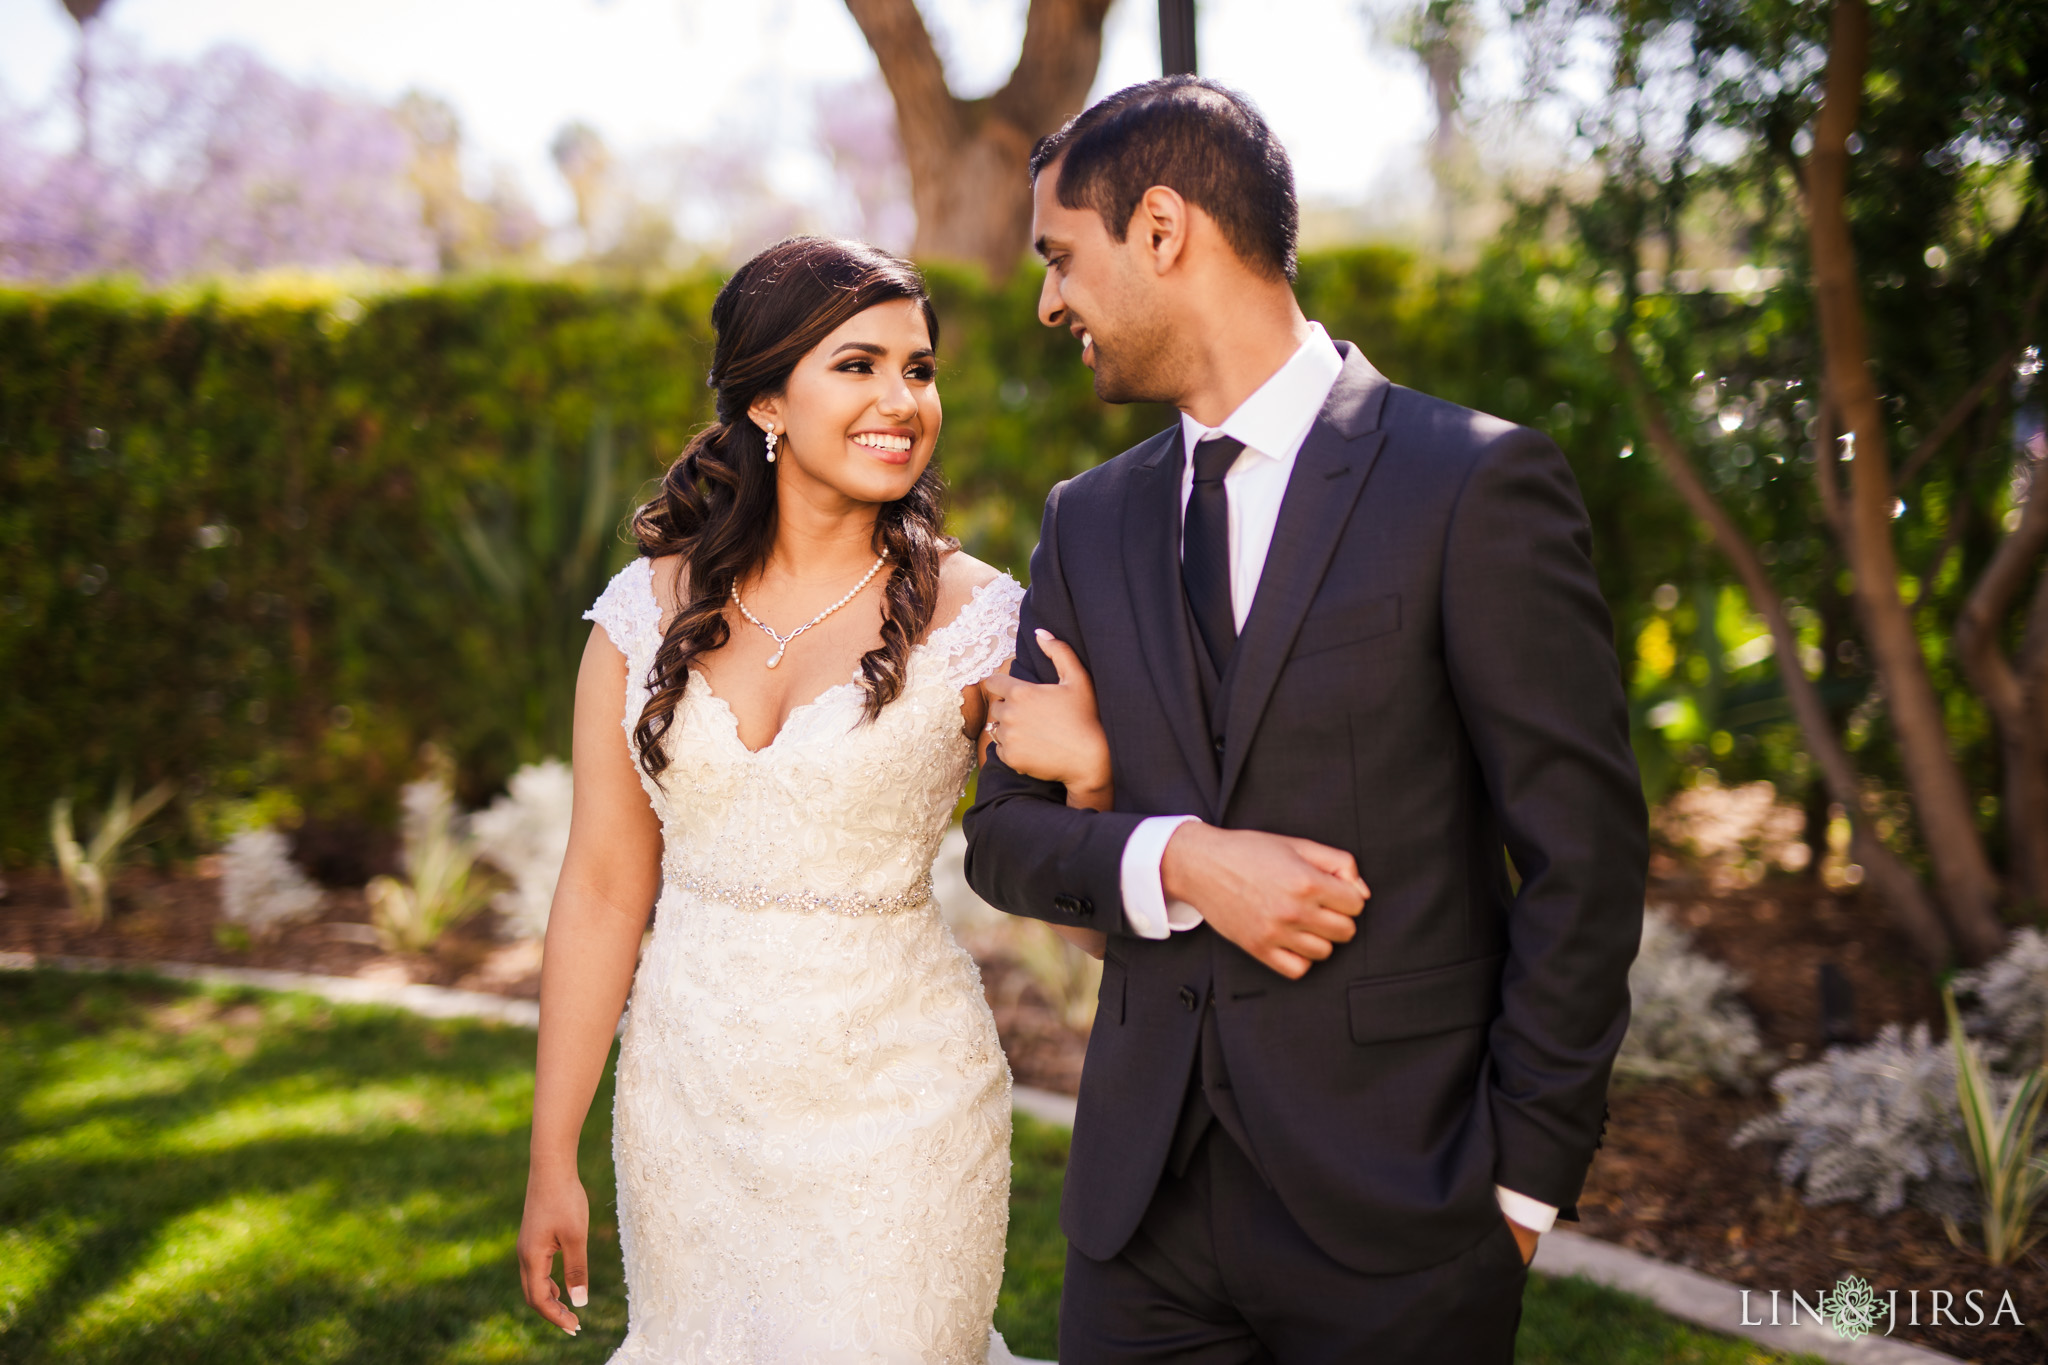 17 sheraton fairplex inland empire indian wedding photography